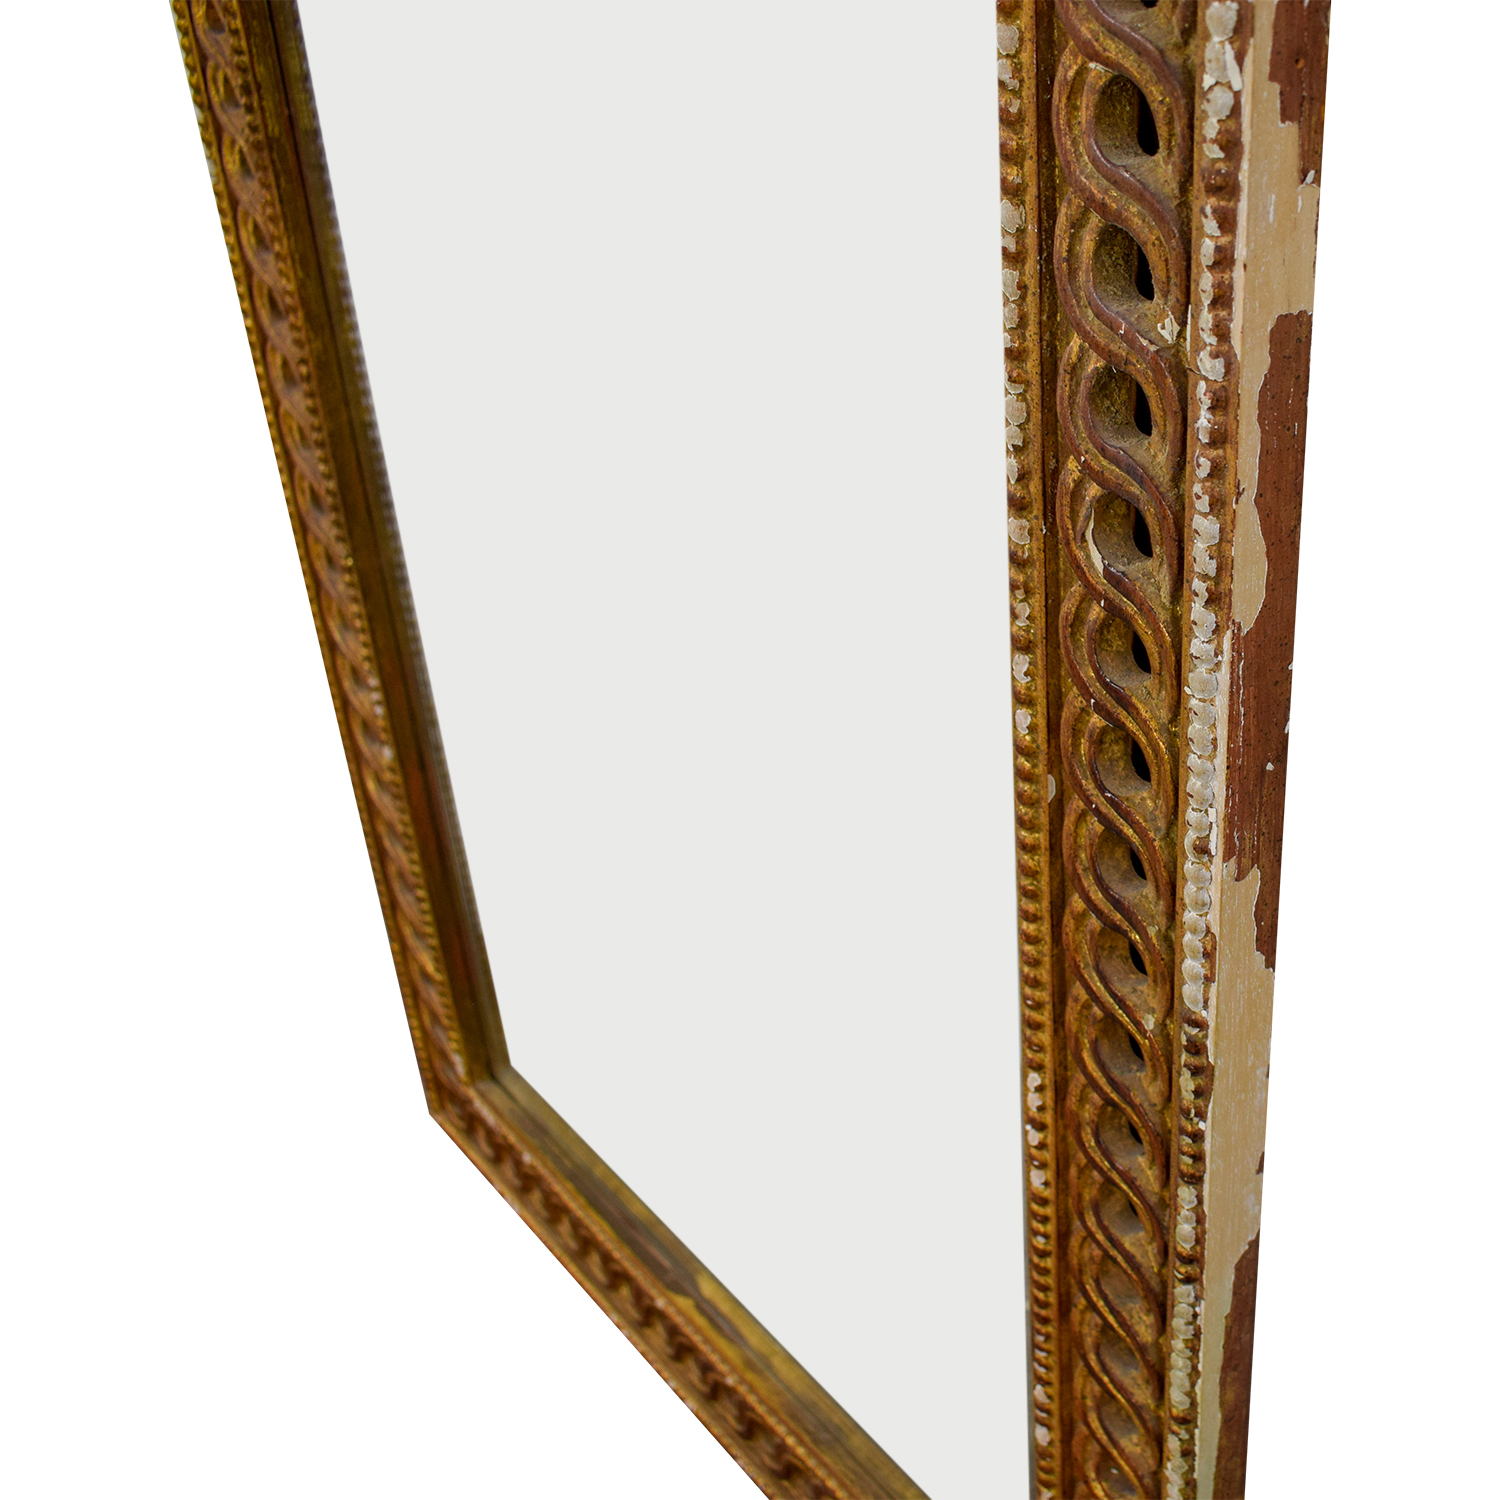 Gold Framed Mirror dimensions